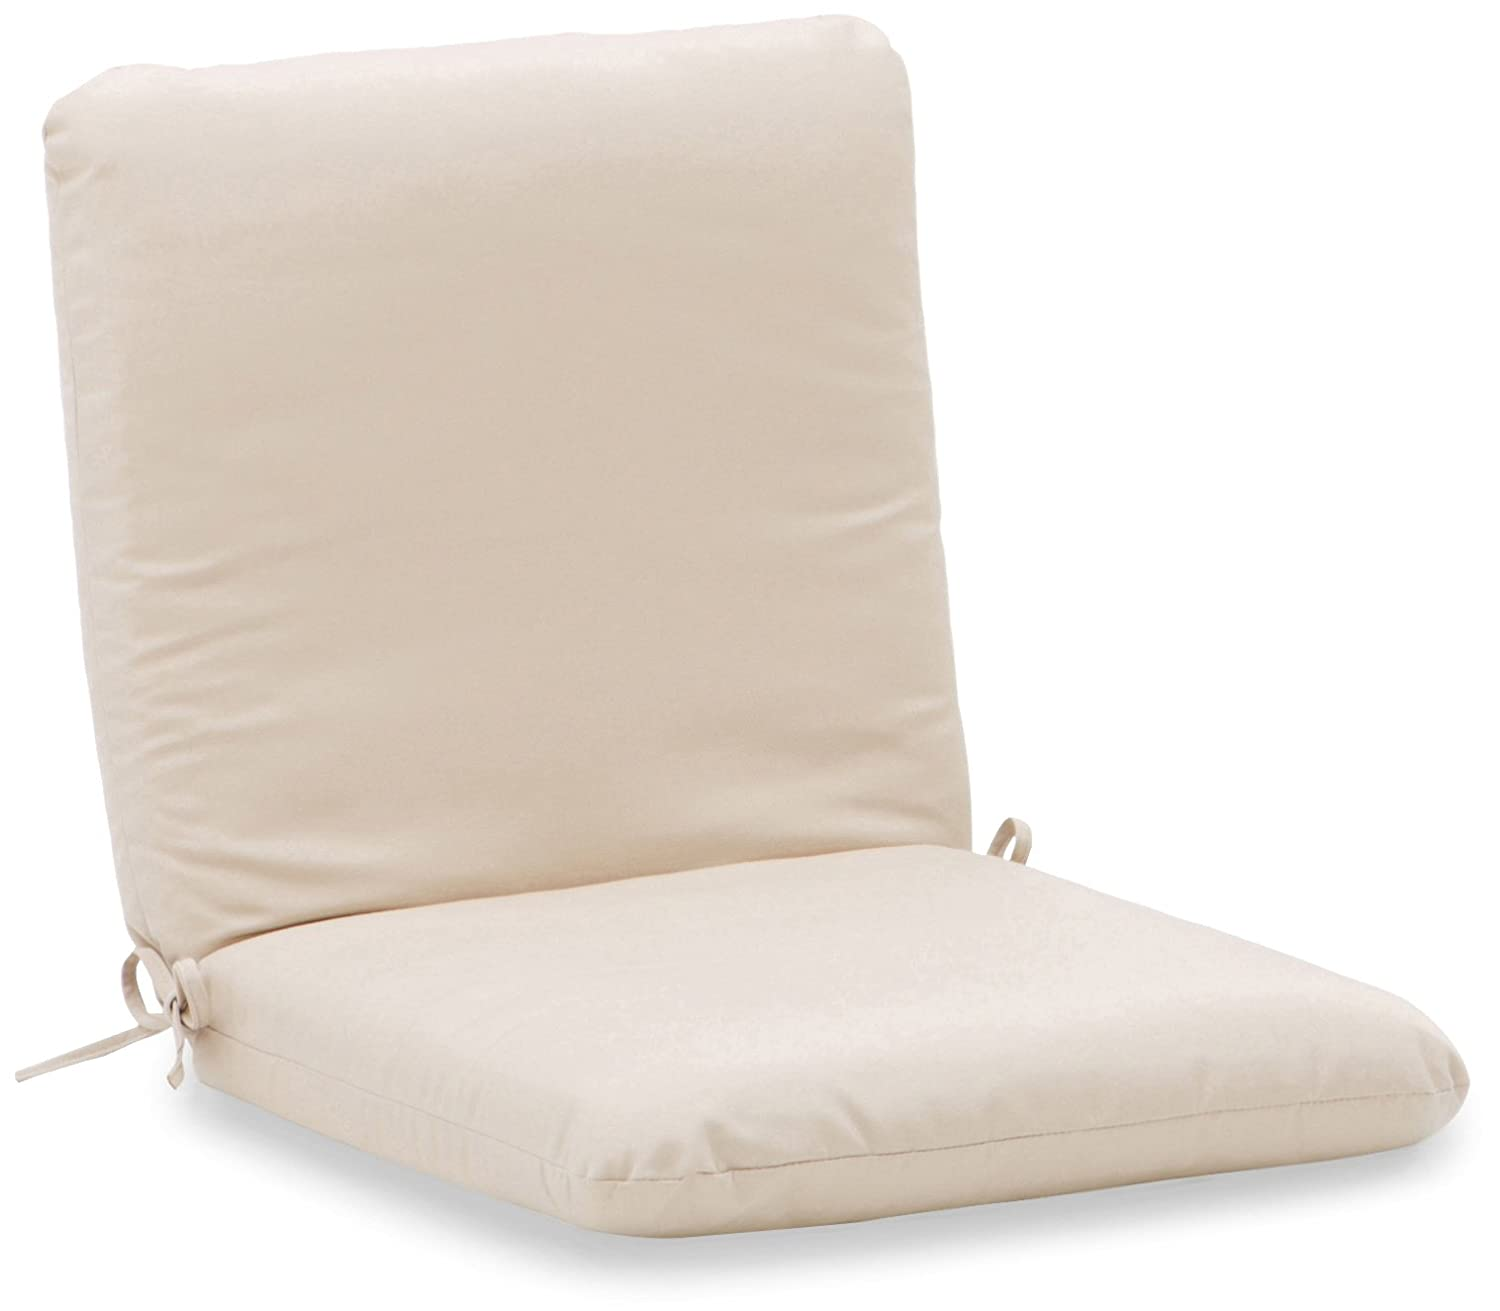 Best Strathwood Patio Furniture Replacement Cushions with images · gshepado